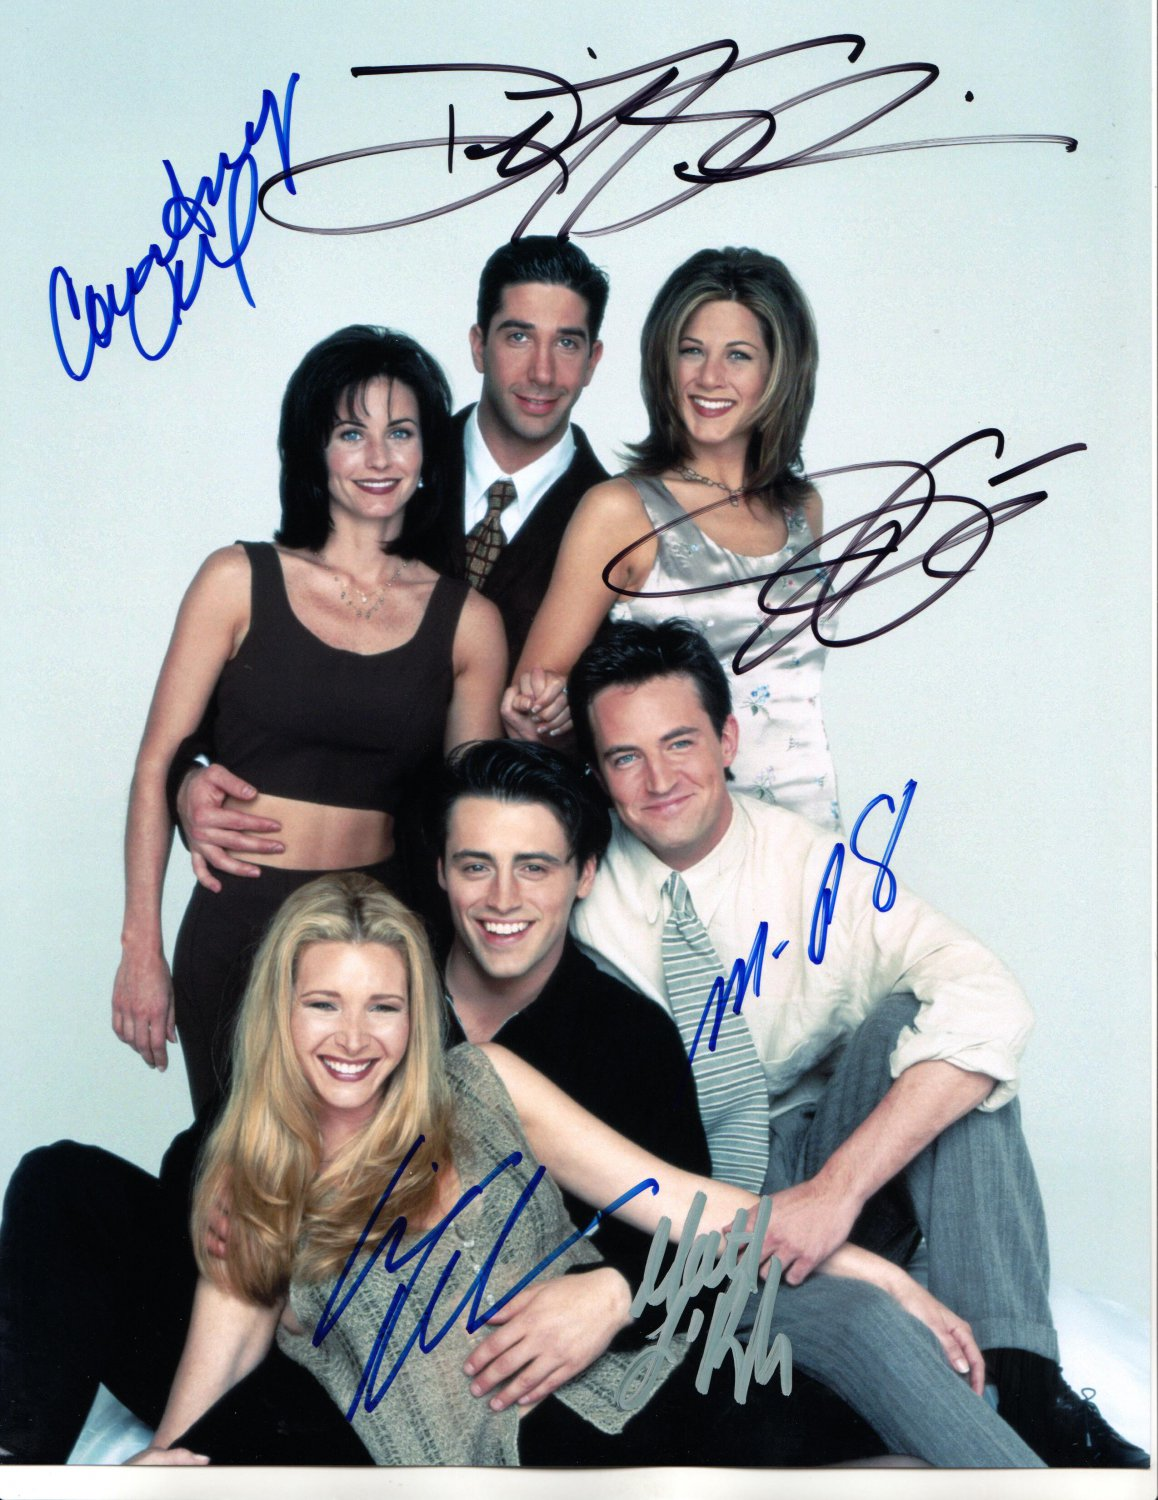 FRIENDS TV CAST - ALL -=6=- ORIGINAL SHOW MEMBERS - AMAZING HAND SIGNED AUTOGRAPHED PHOTO WITH COA